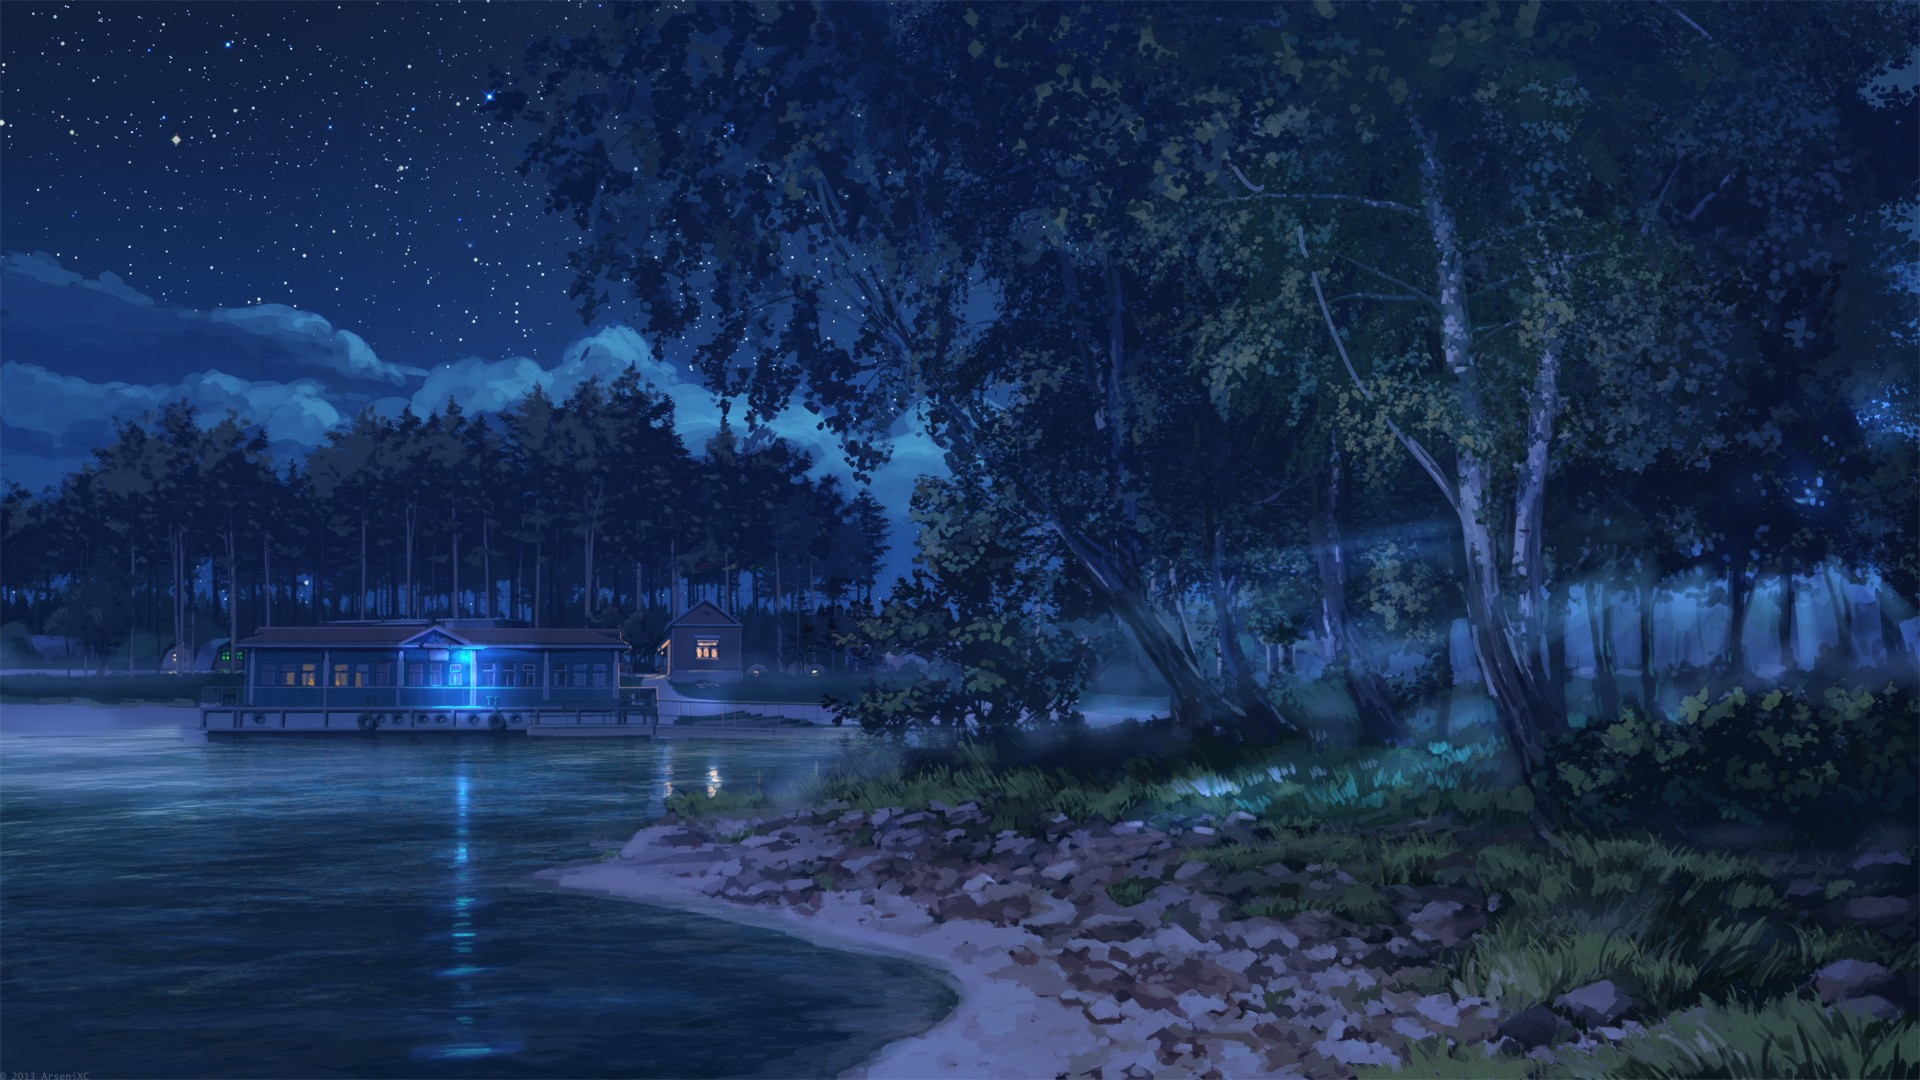 dark anime background scenery download free stunning wallpapers